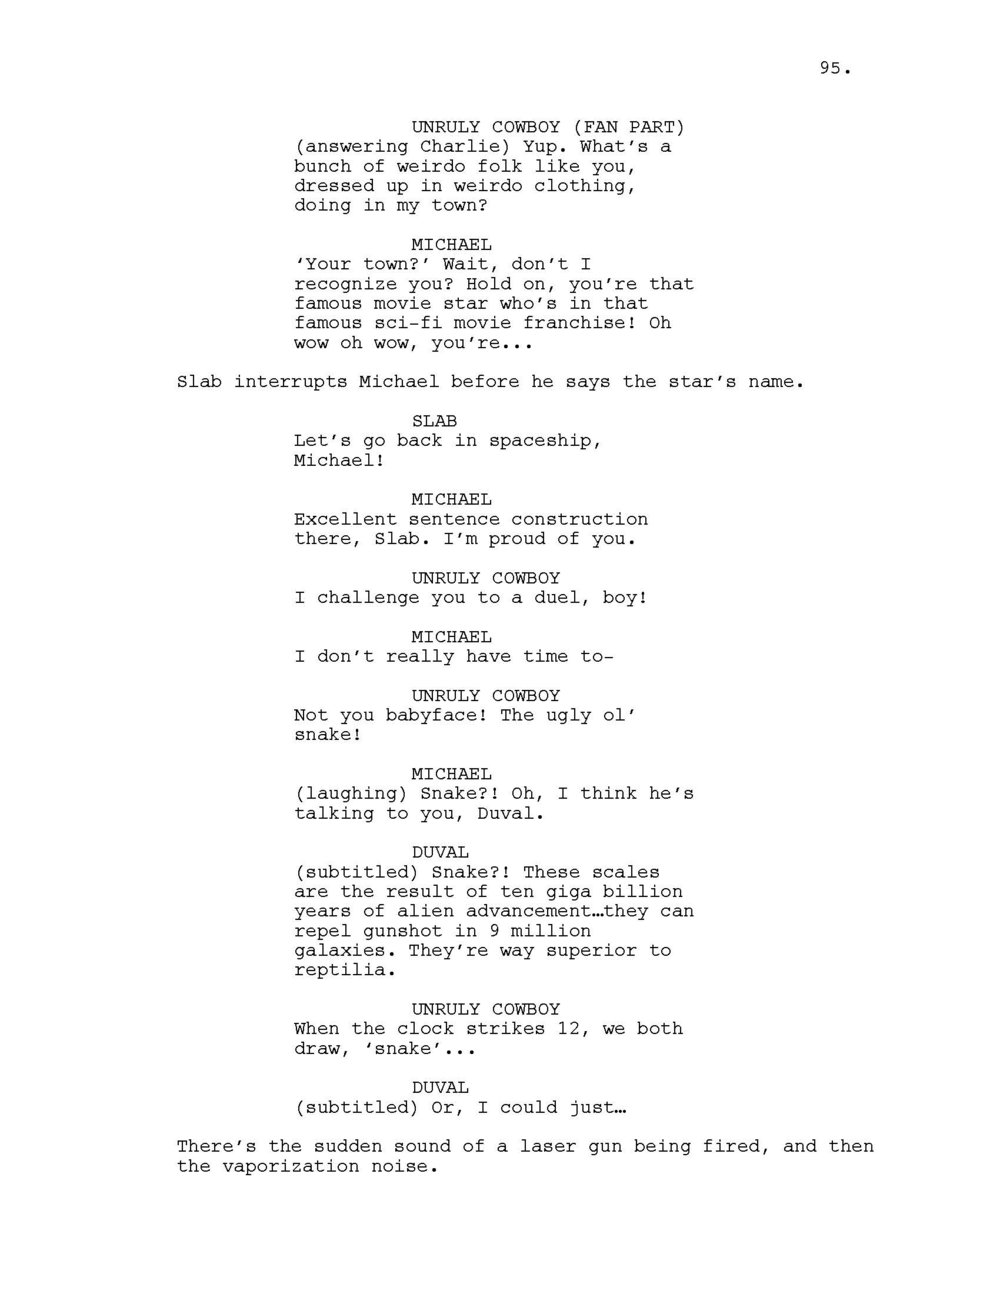 INVISIBLE WORLD SCRIPT_Page_096.jpg